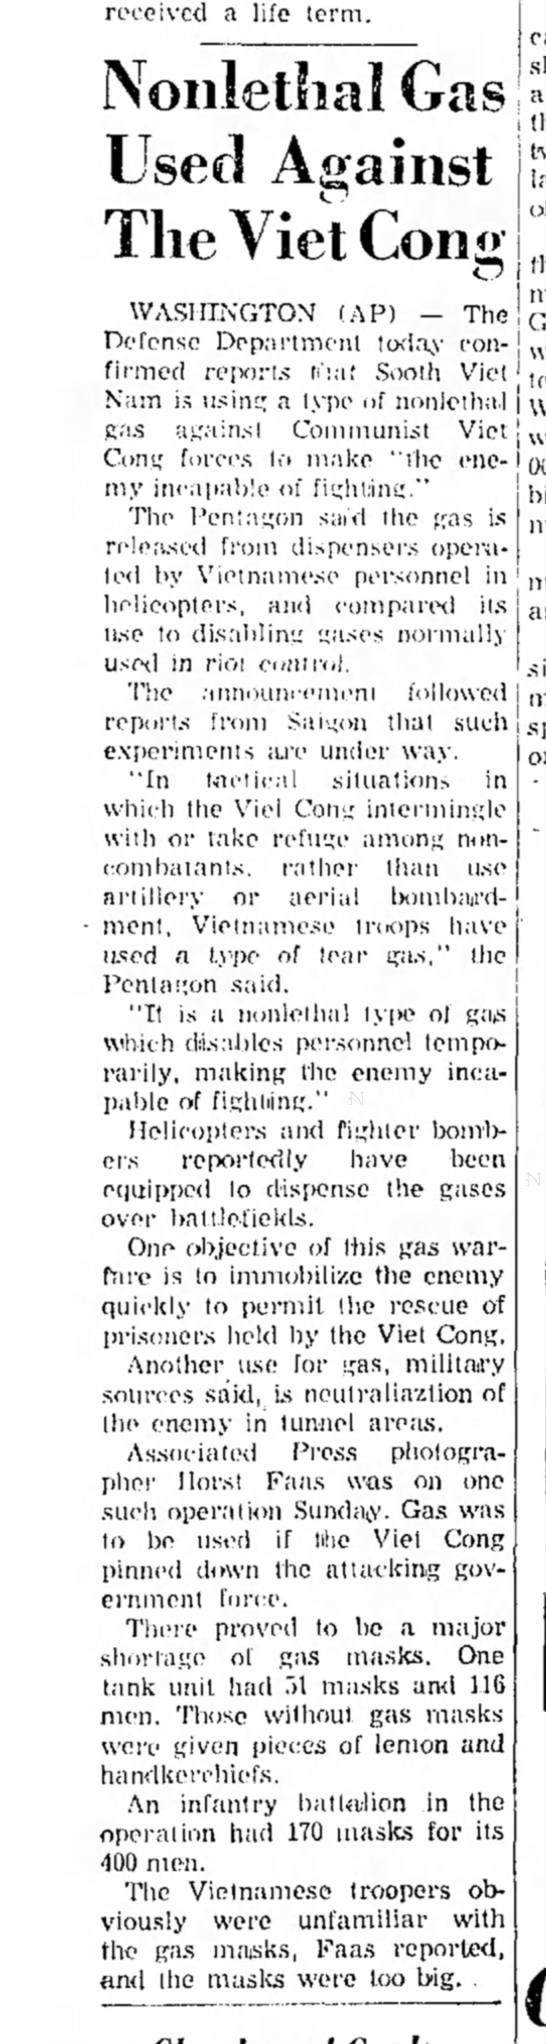 Leavenworth Times (KS)